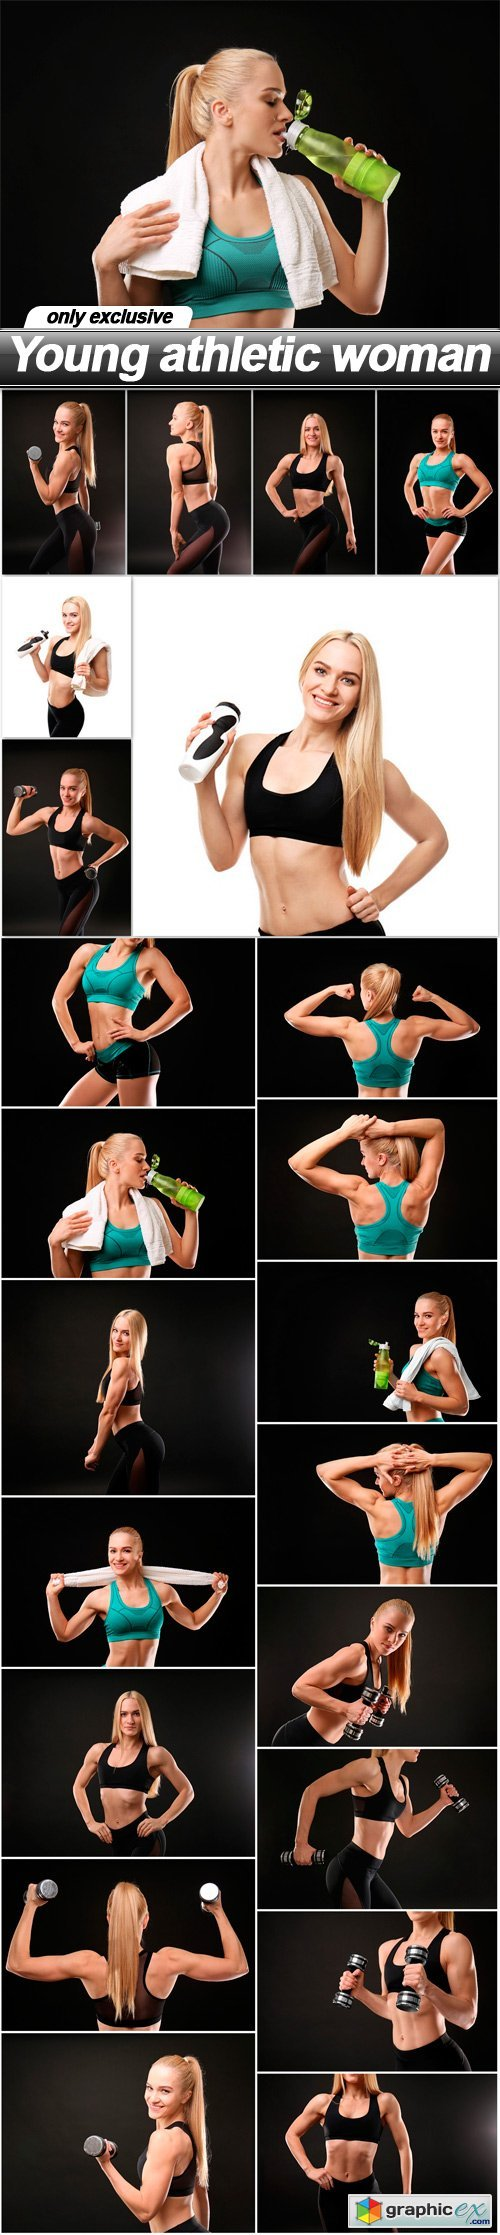 Young athletic woman - 22 UHQ JPEG